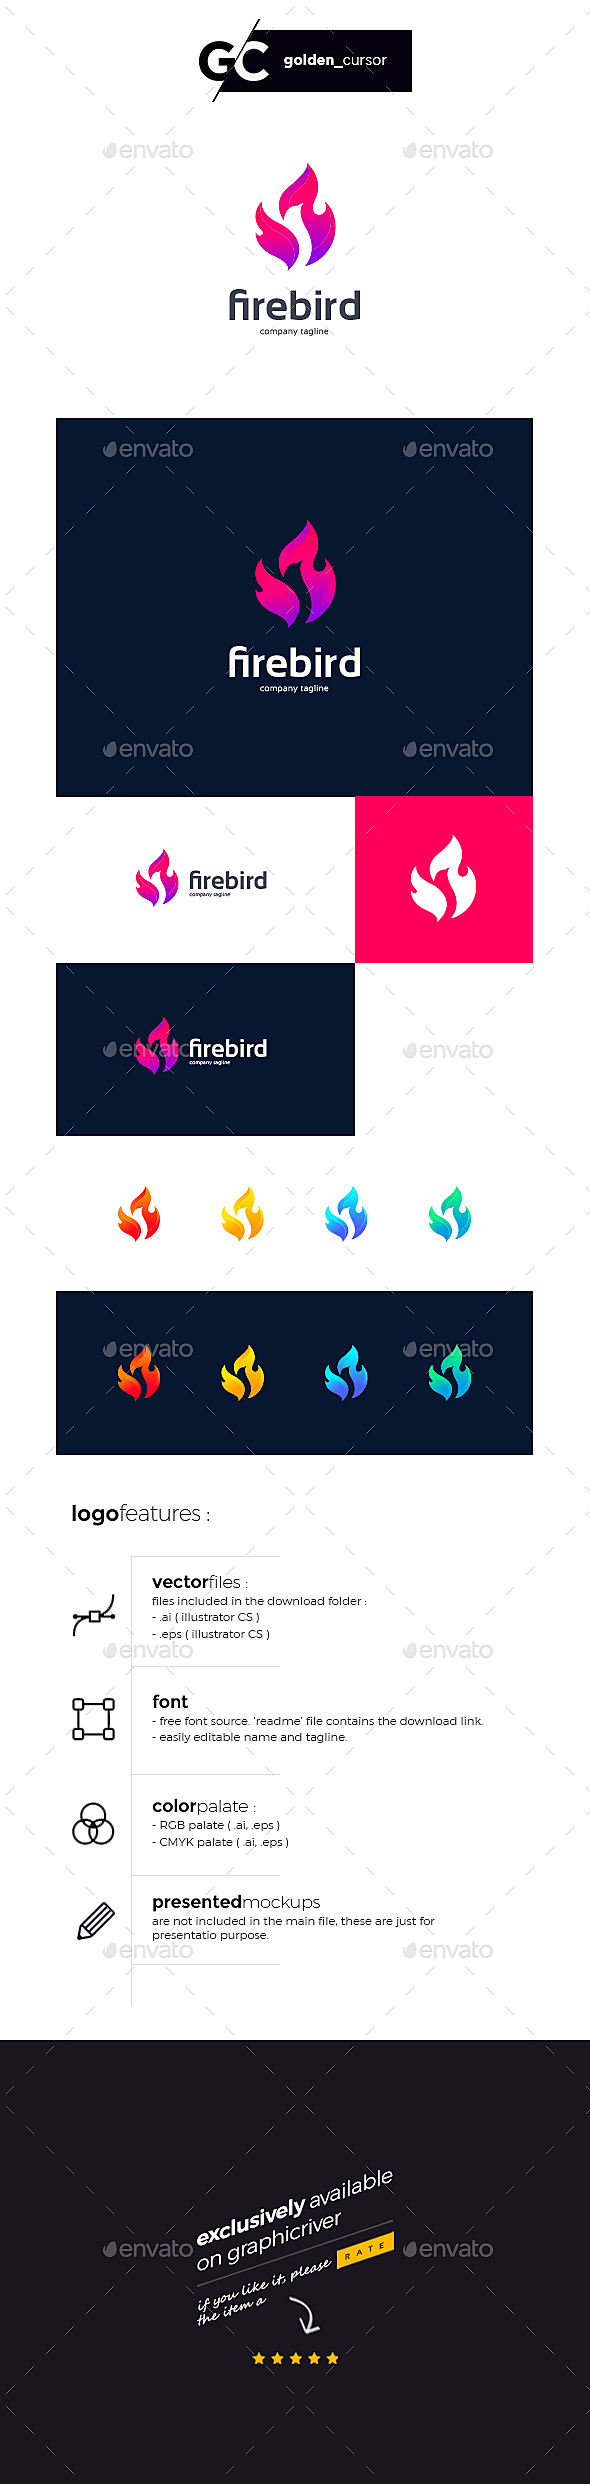 LOGO FEATURES:   	Full Vector ( EPS & AI format )   	100% editable and resizable content   	RGB color palate   	Free fonts   	NOTE :   	The preview mock-ups are not included in the download file, It's only for the presentation purpose. Contact me via my profile page if you need any assistance. All logos in my portfolio are exclusively available only on Graphicriver.   	Thank you for your purchase and support. 'YOU HAVE A GREAT CHOICE' Enjoy